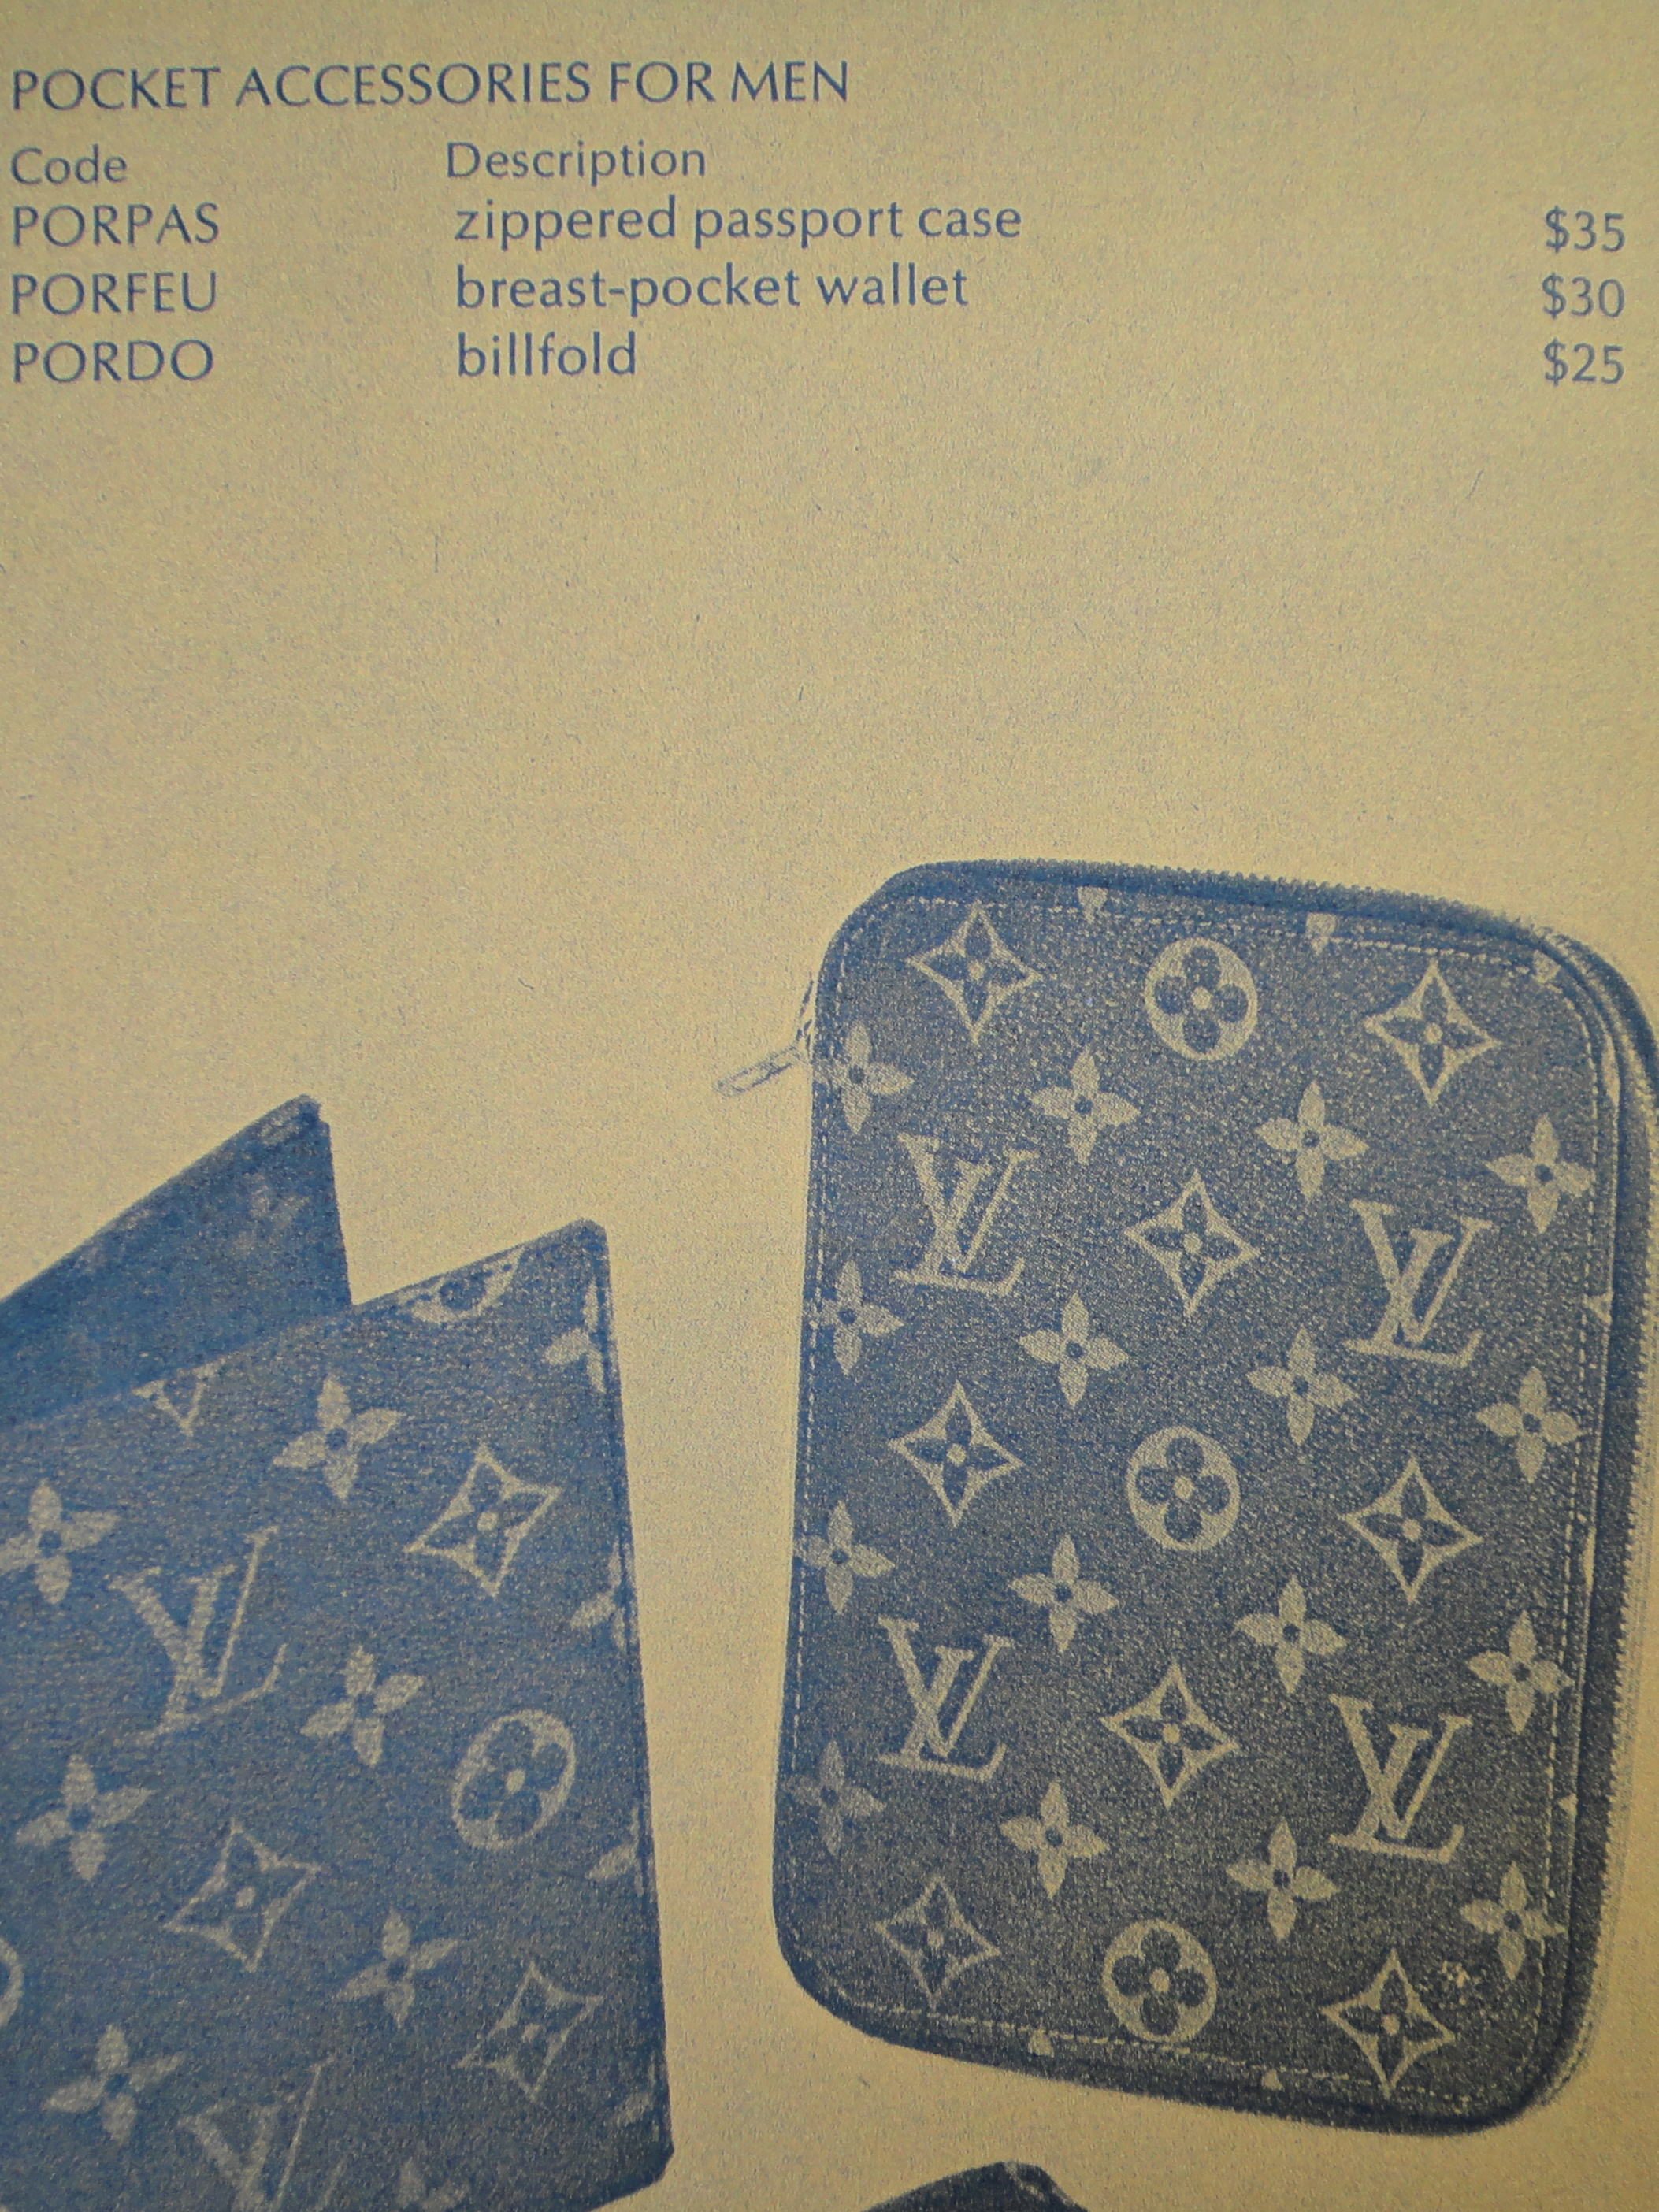 from '80ies Saks Fifth Avenue catalog/price list